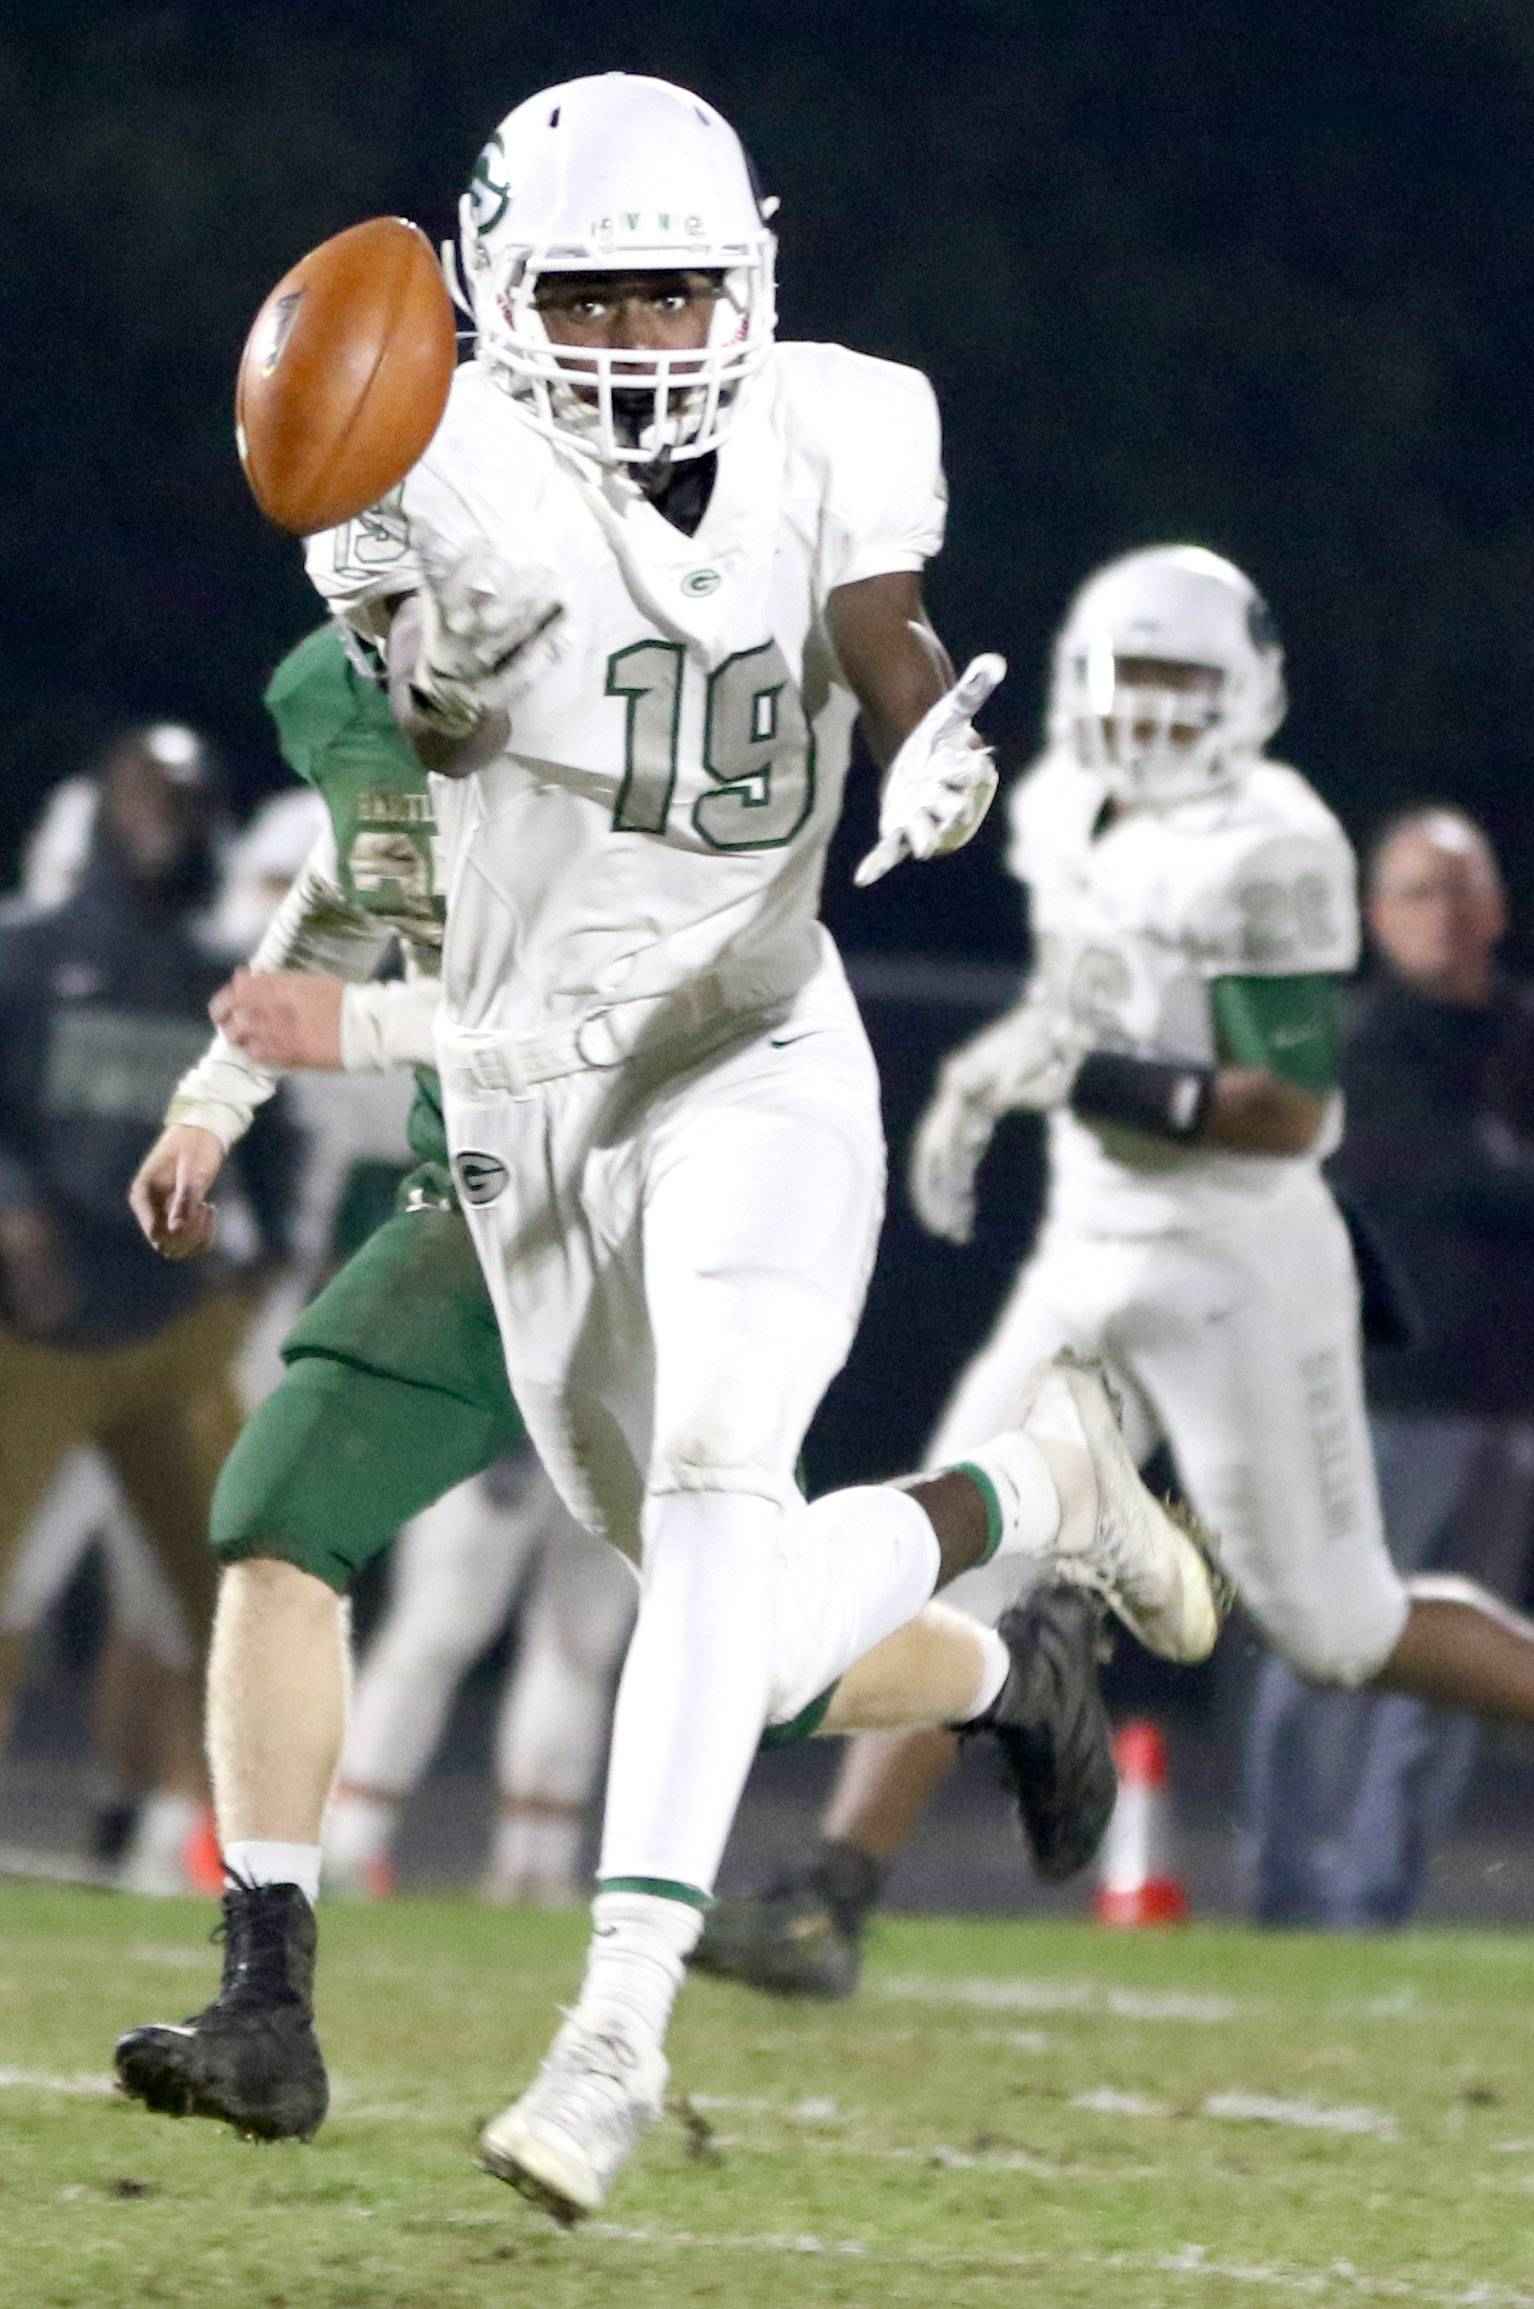 Glenbard West's Corey Williams reels in a pass during first round playoff football action at Bartlett Friday night.